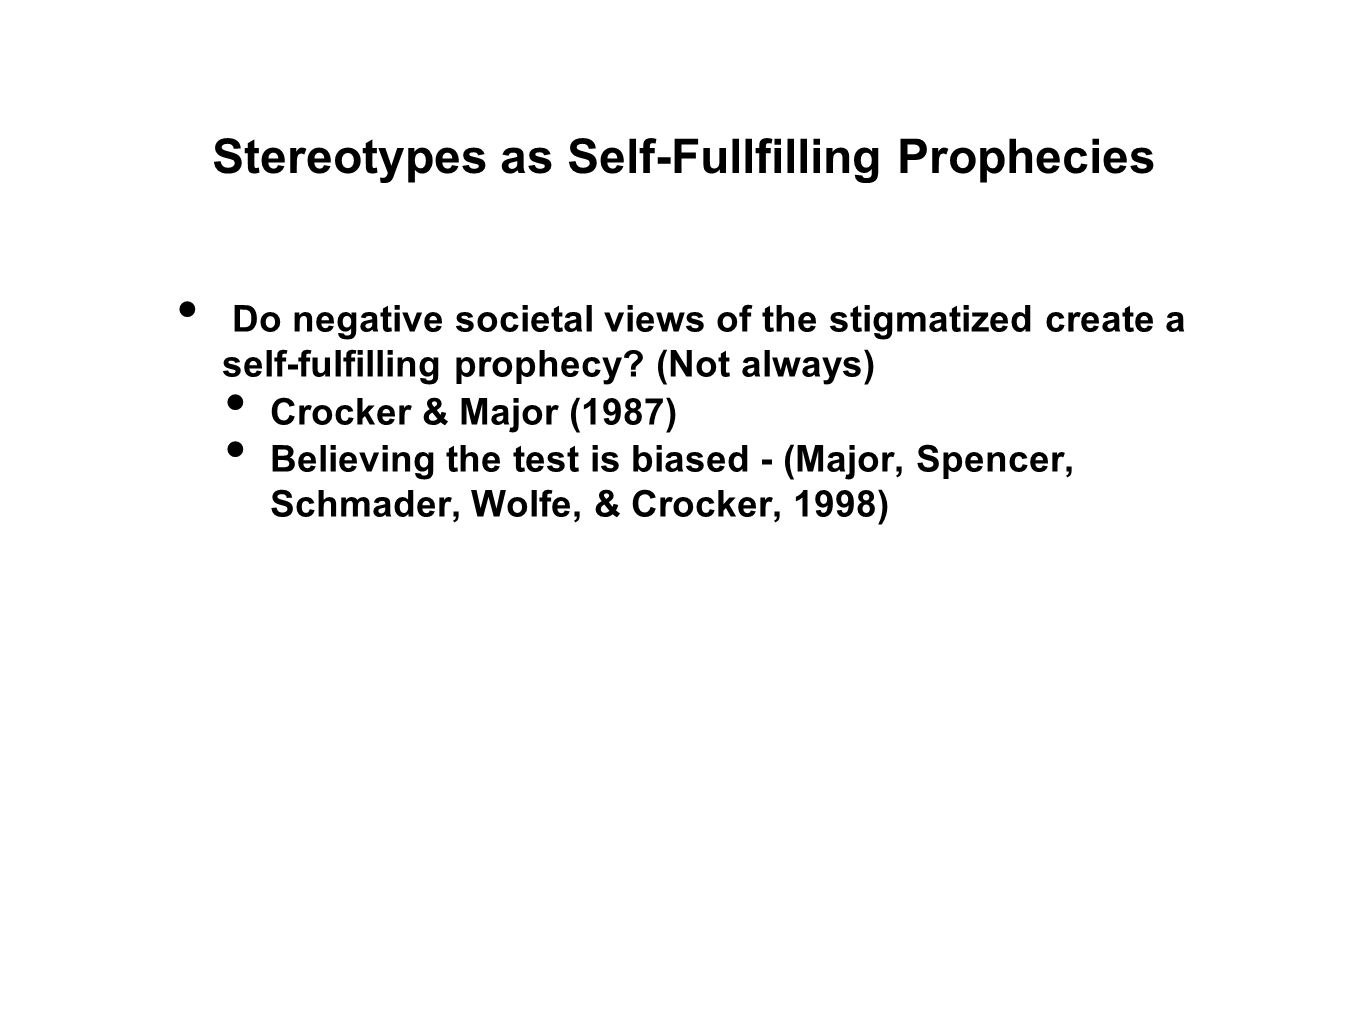 Do negative societal views of the stigmatized create a self-fulfilling prophecy? (Not always) Crocker & Major (1987) Believing the test is biased - (M